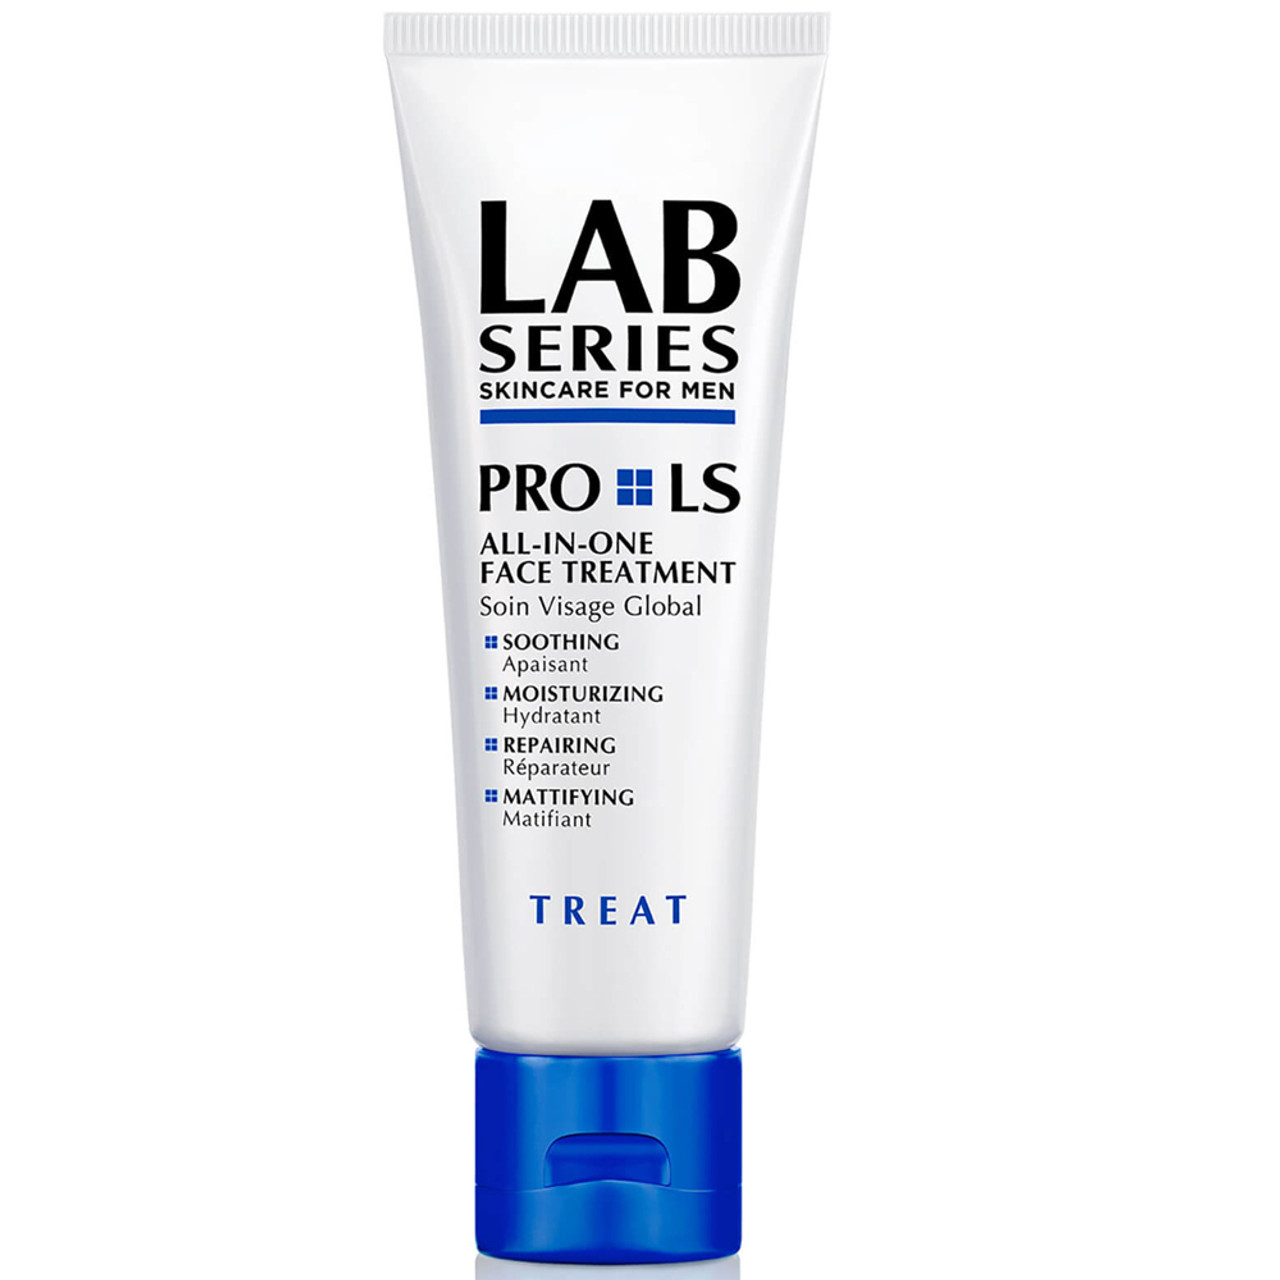 Lab Series Pro LS All-in-One Face Treatment BeautifiedYou.com